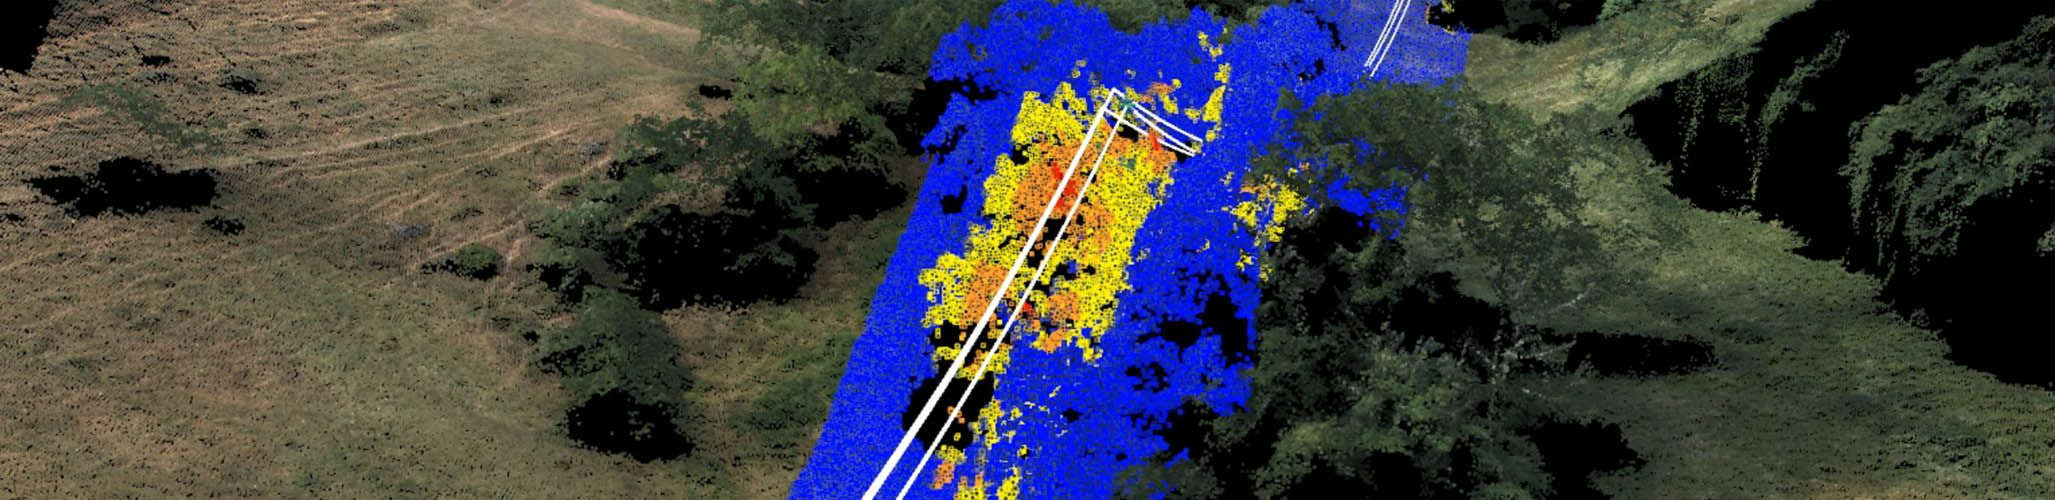 Delair-Tech provides drones and UAVs for vegetation encroachment for powerlines